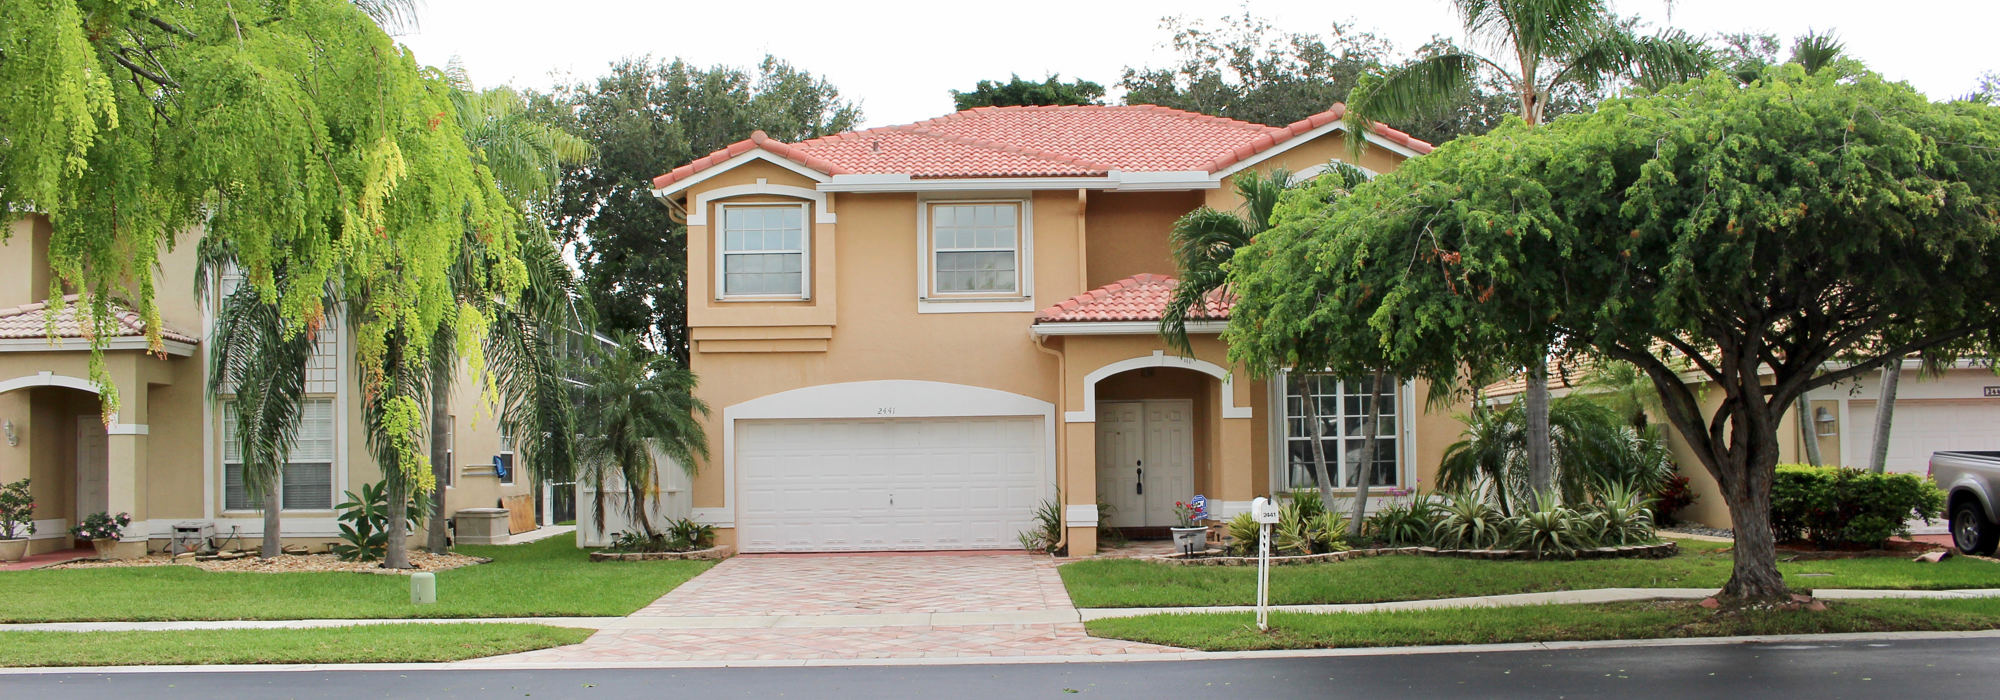 2441 NW 139 Ave, Sunrise (Sawgrass Preserve)